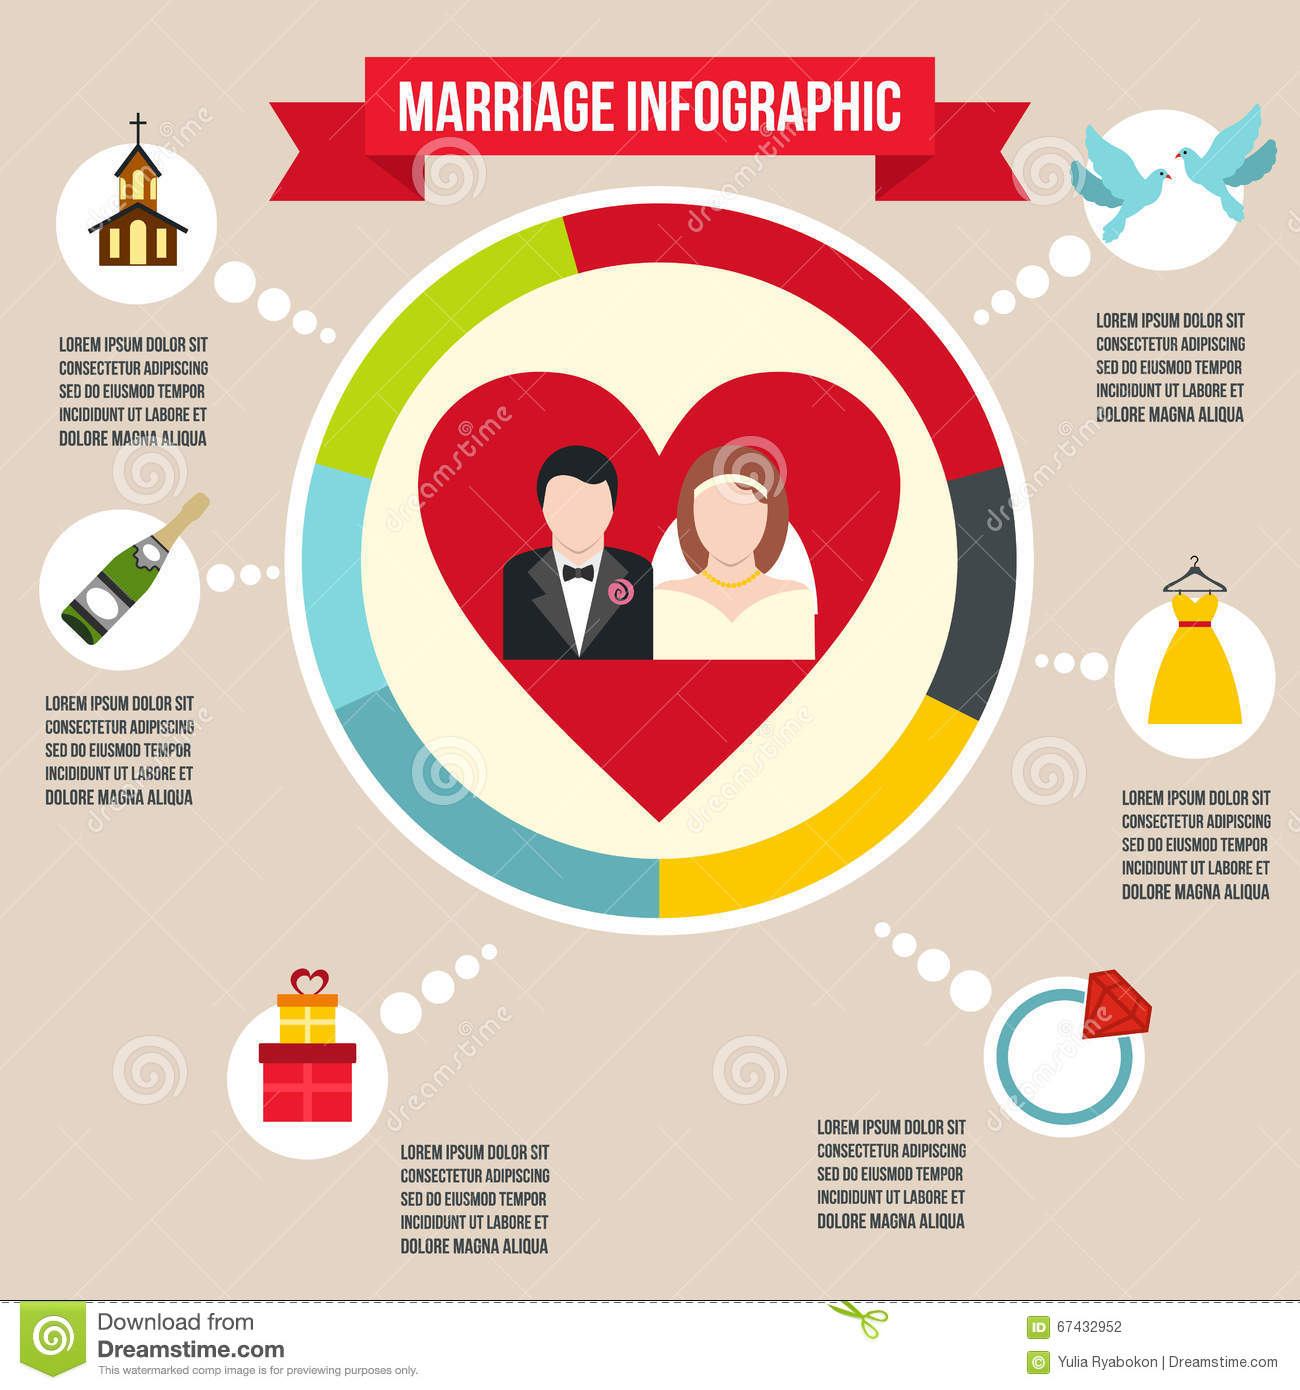 Wedding Marriage Infographic Stock Vector - Image: 67432952